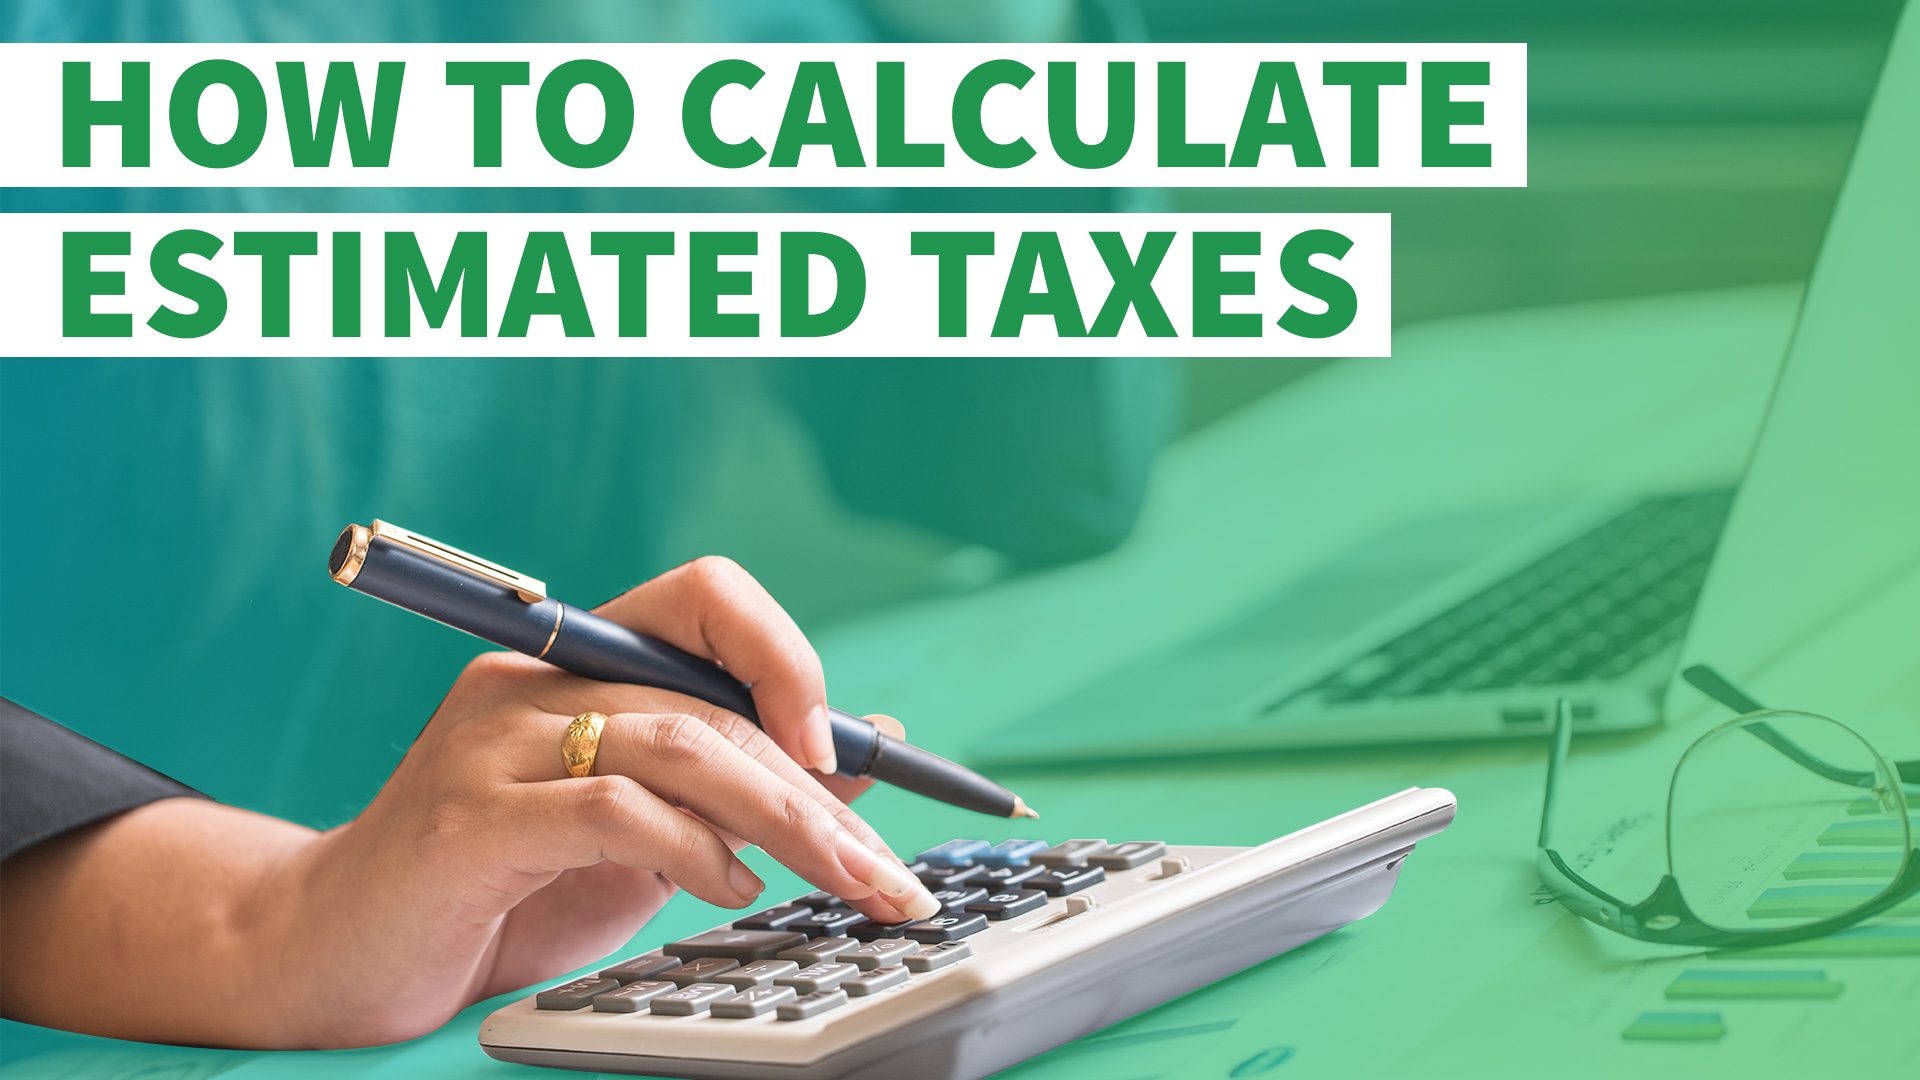 How To Calculate Estimated Taxes